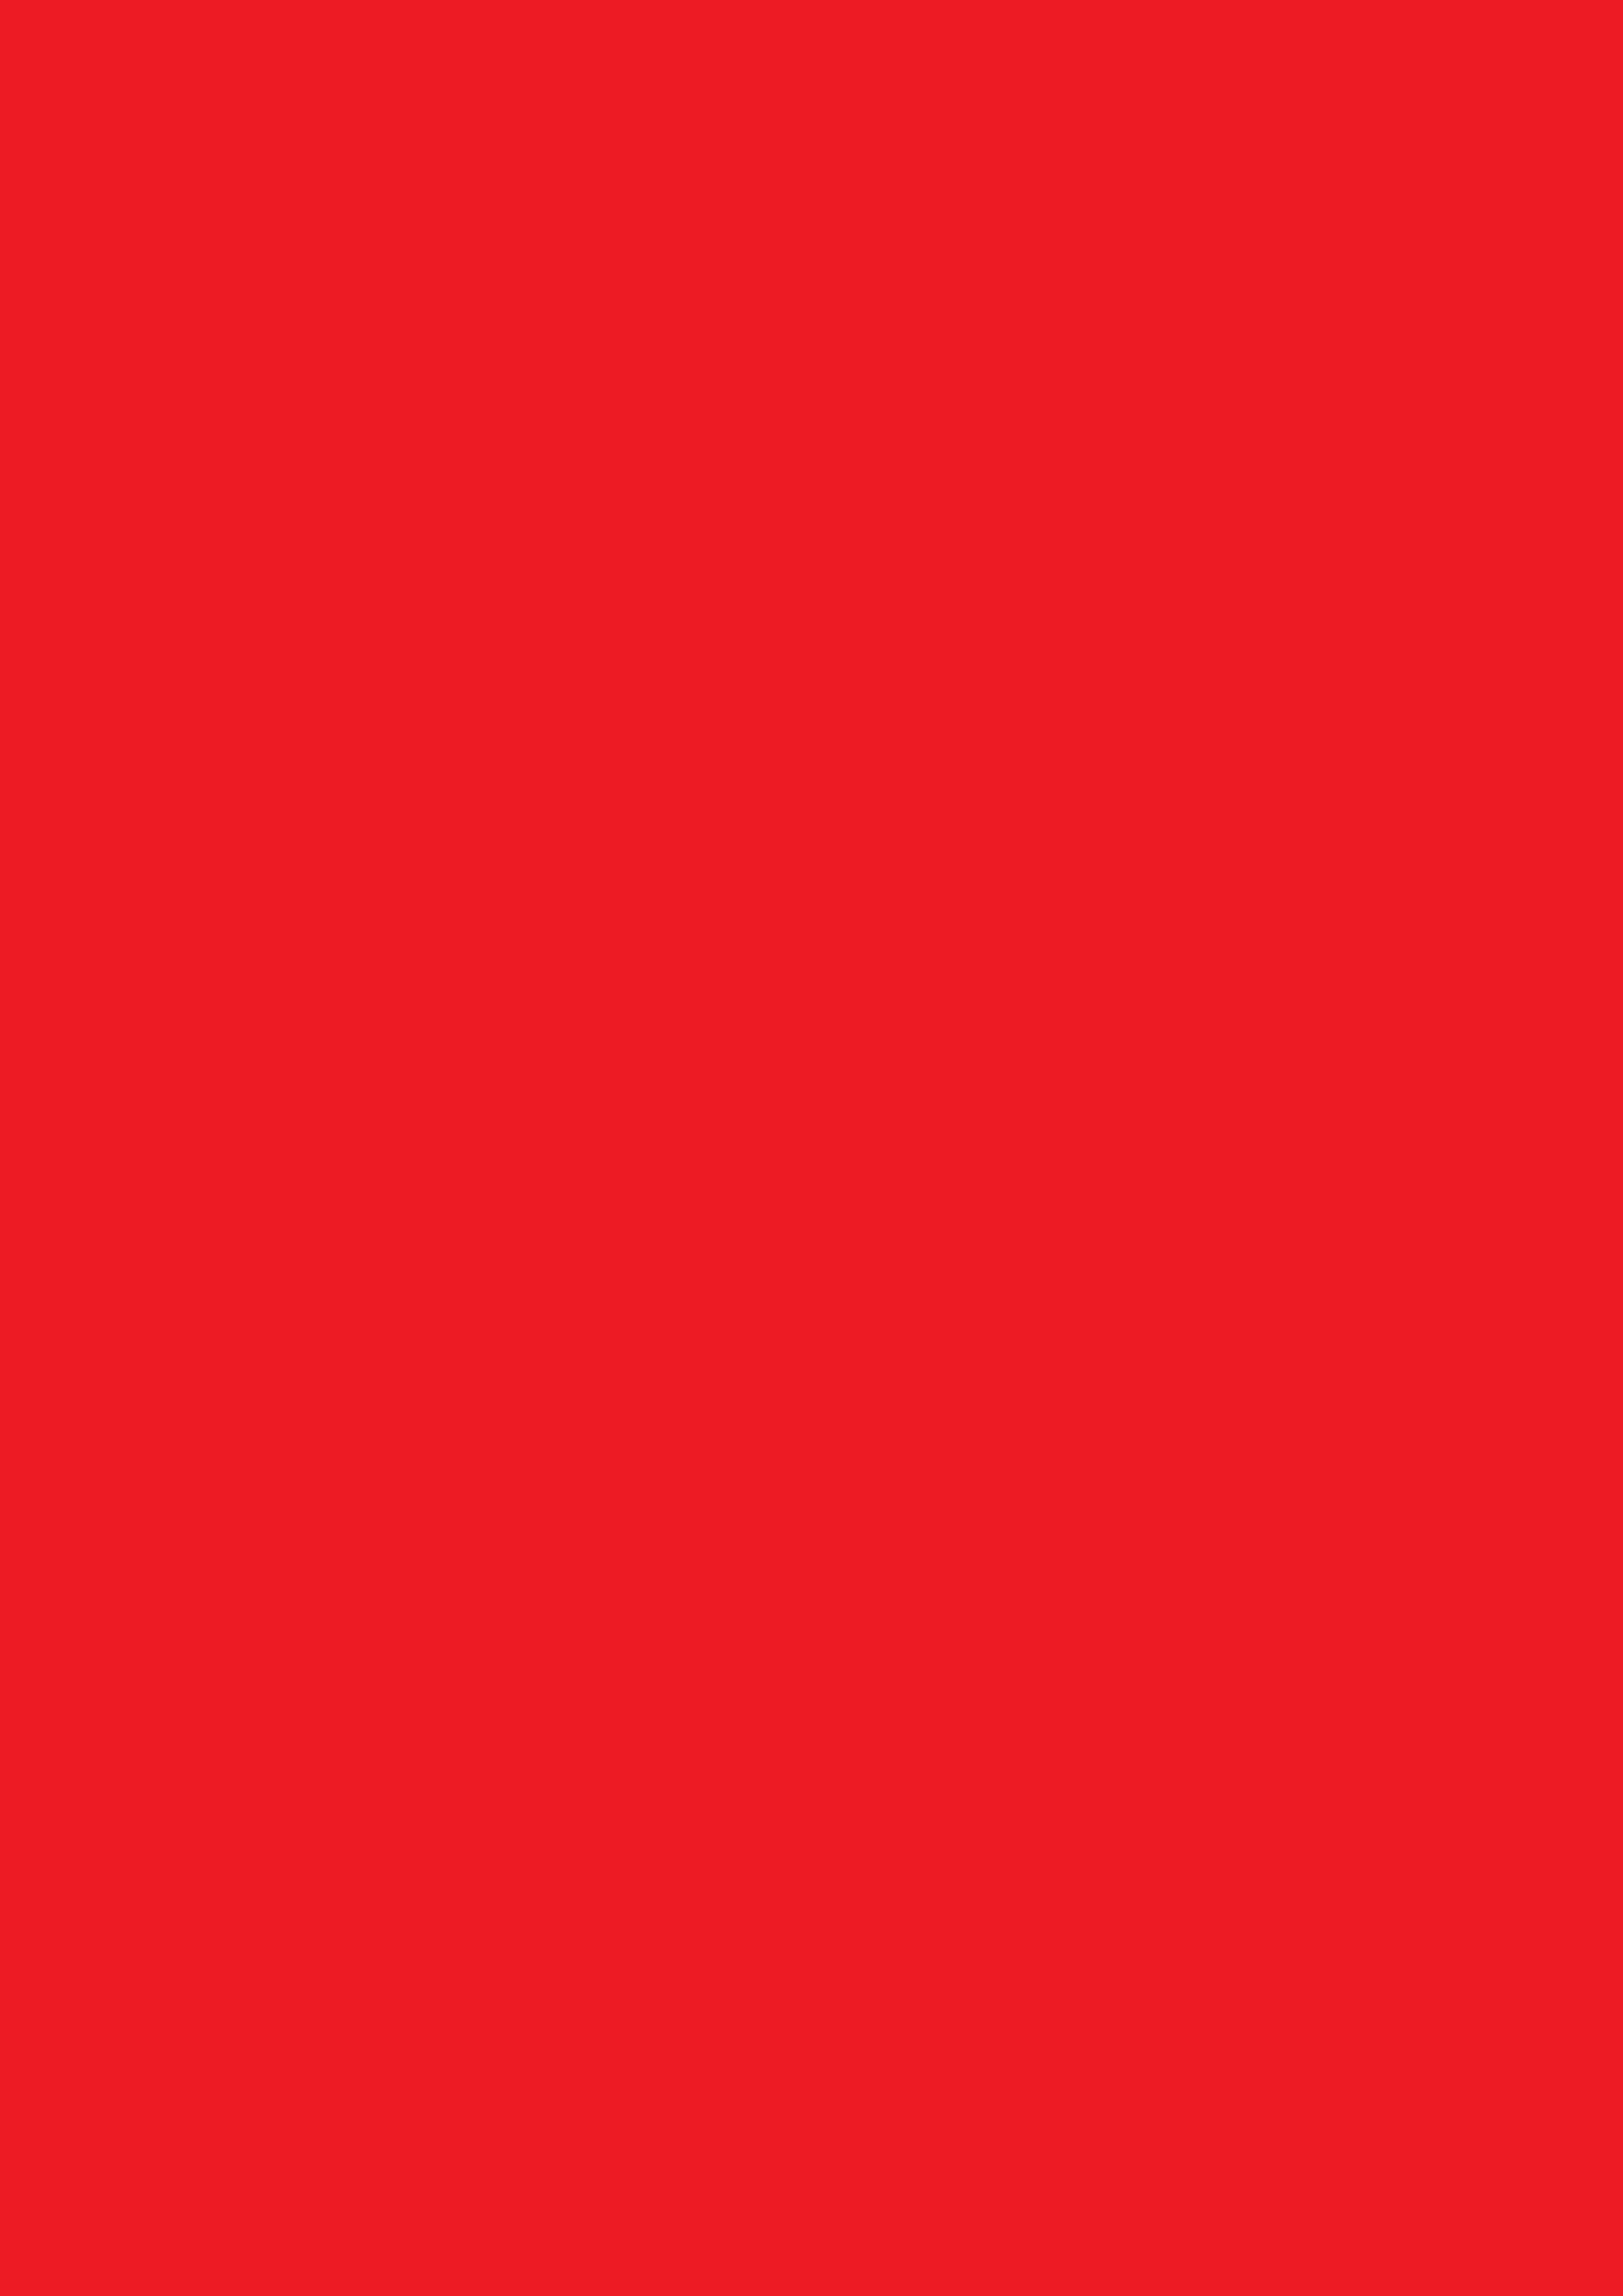 2480x3508 Red Pigment Solid Color Background